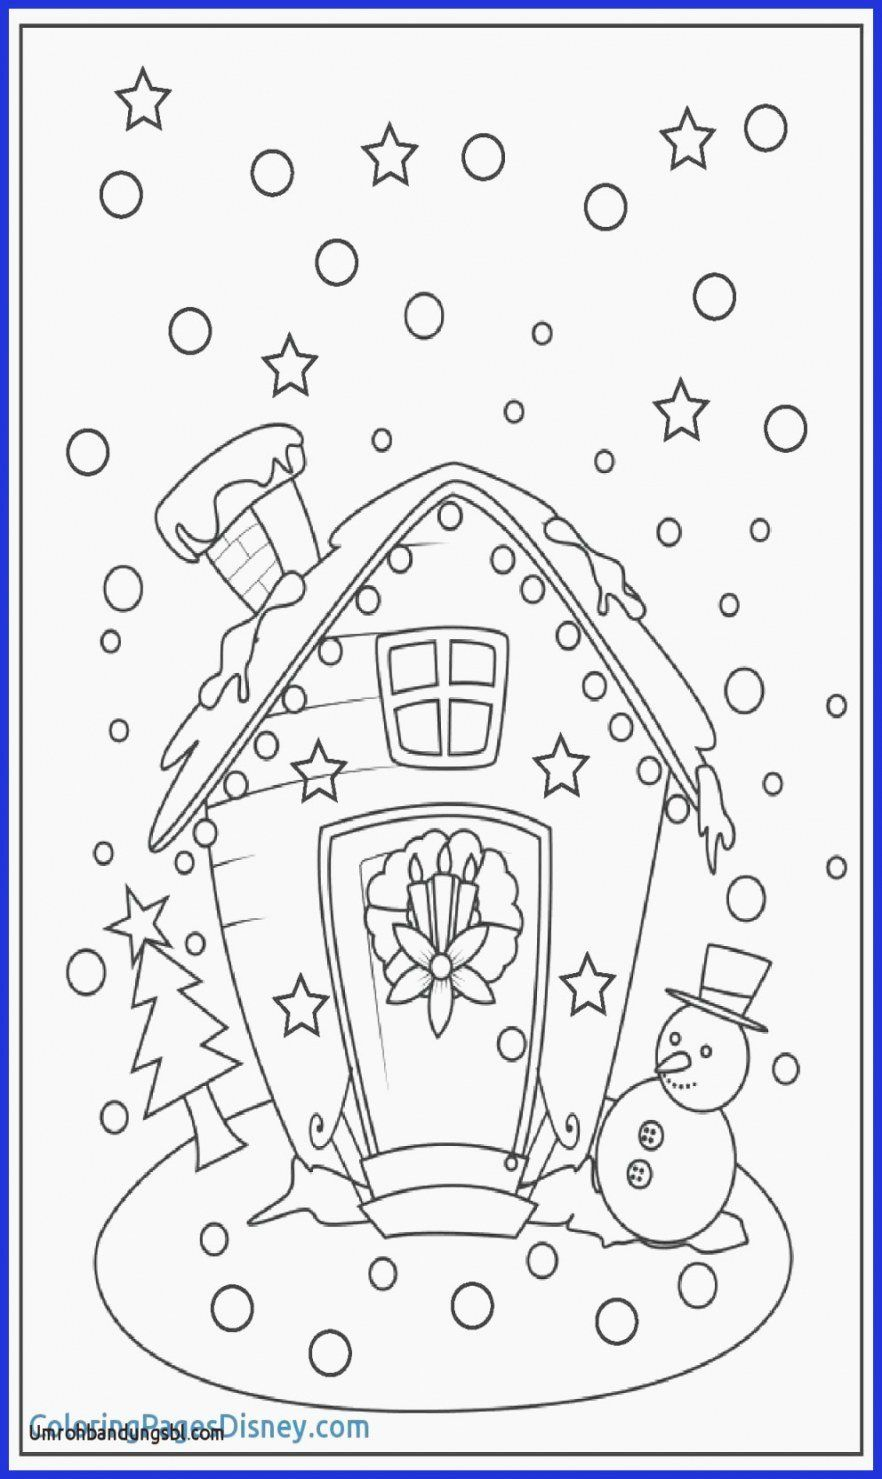 Coloring Games Online for Free New Lego Coloring Page Free ...